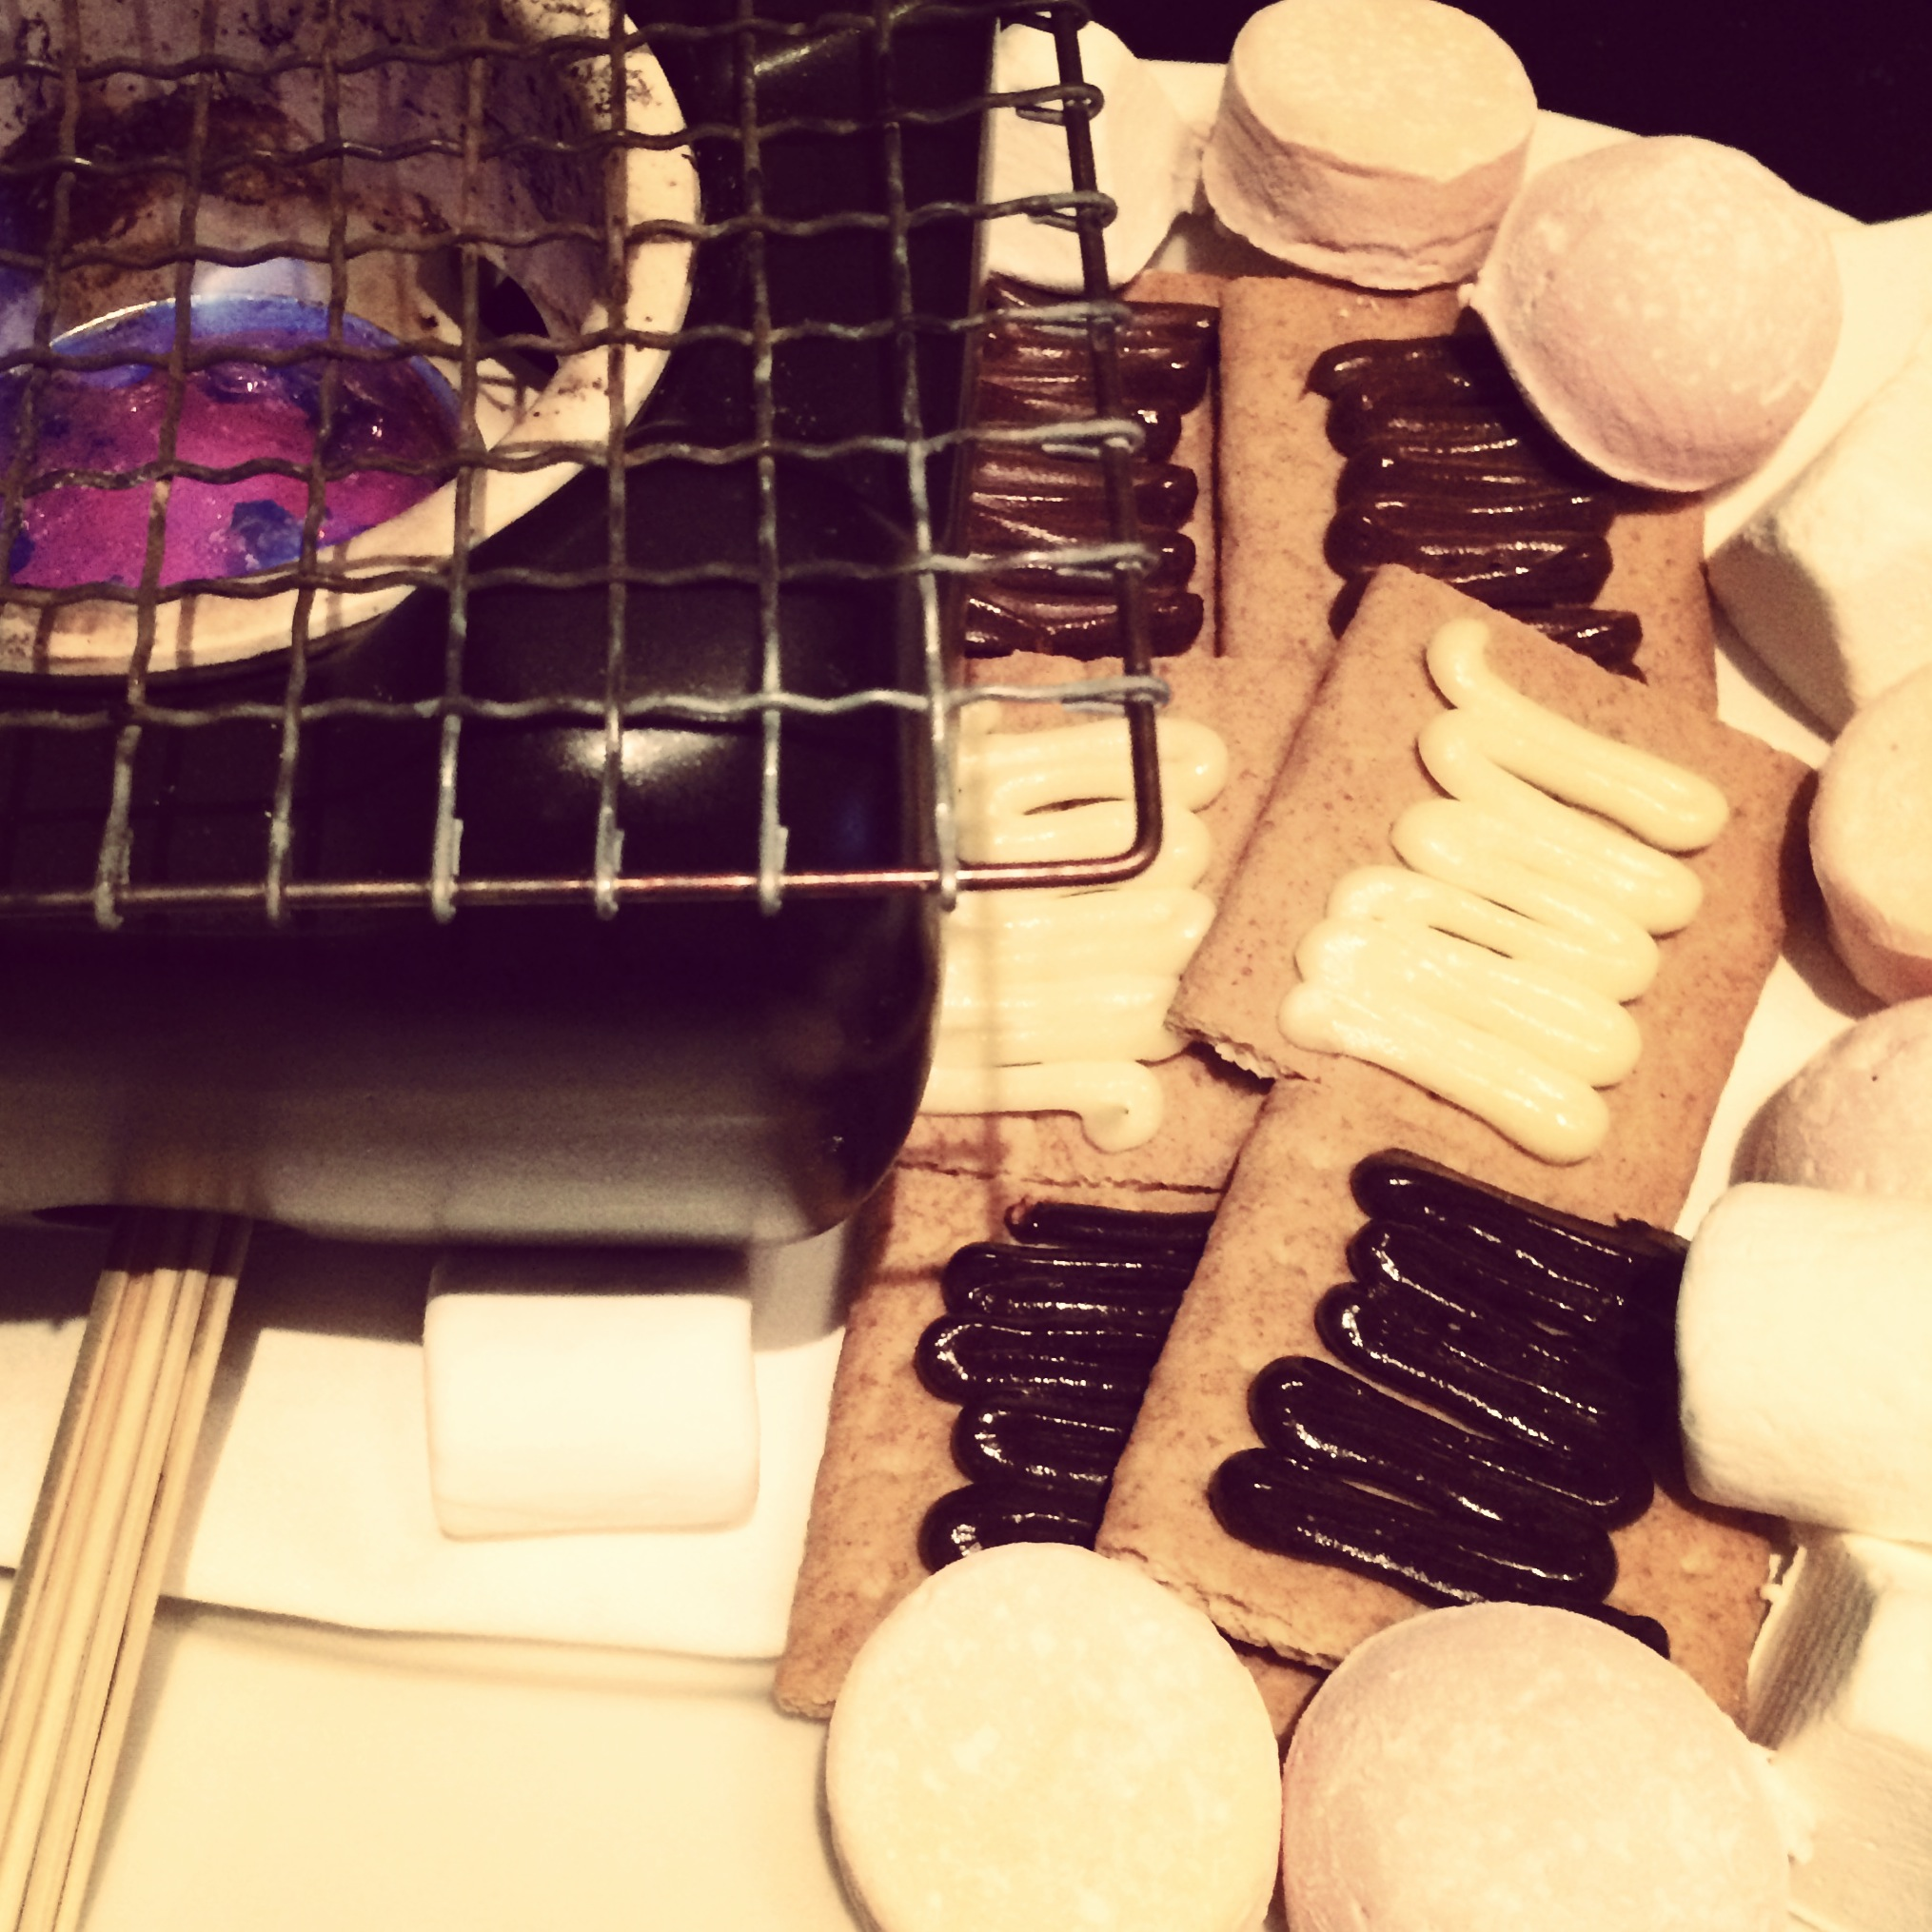 N9NE Steakhouse S'Mores - One of my favorite desserts.